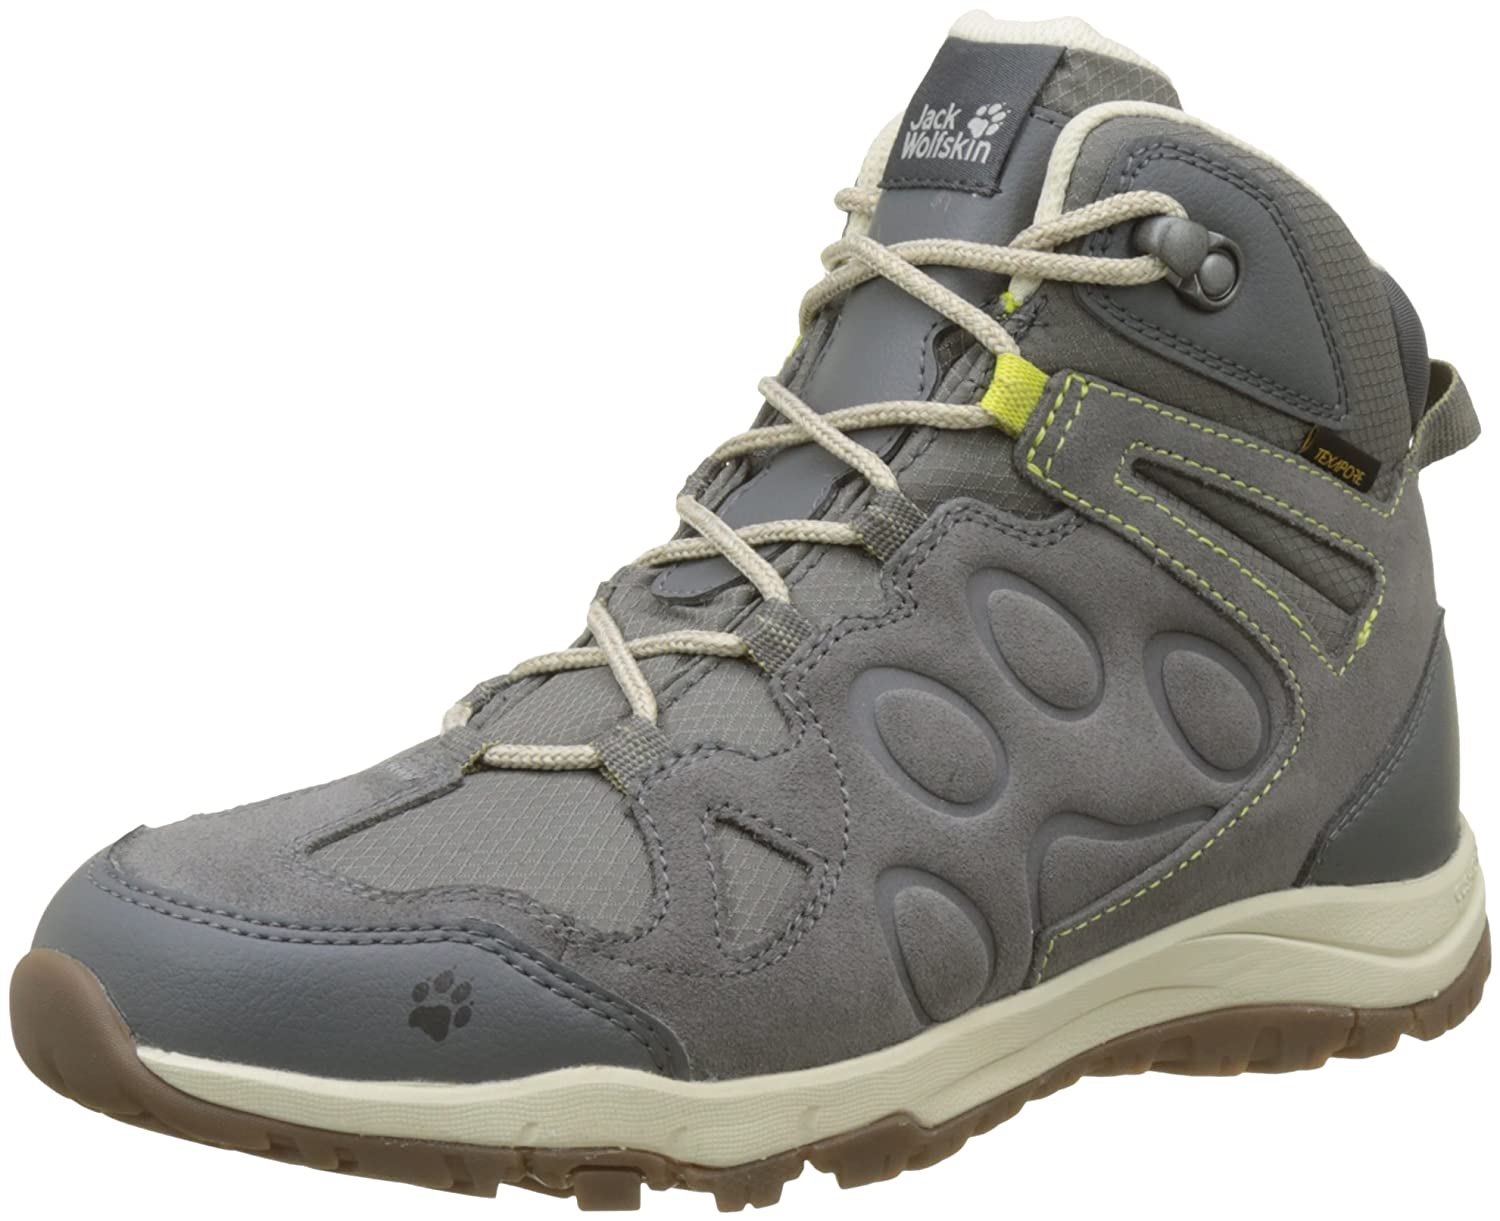 Jack Wolfskin Women's Rocksand Texapore Mid W Hiking Shoe